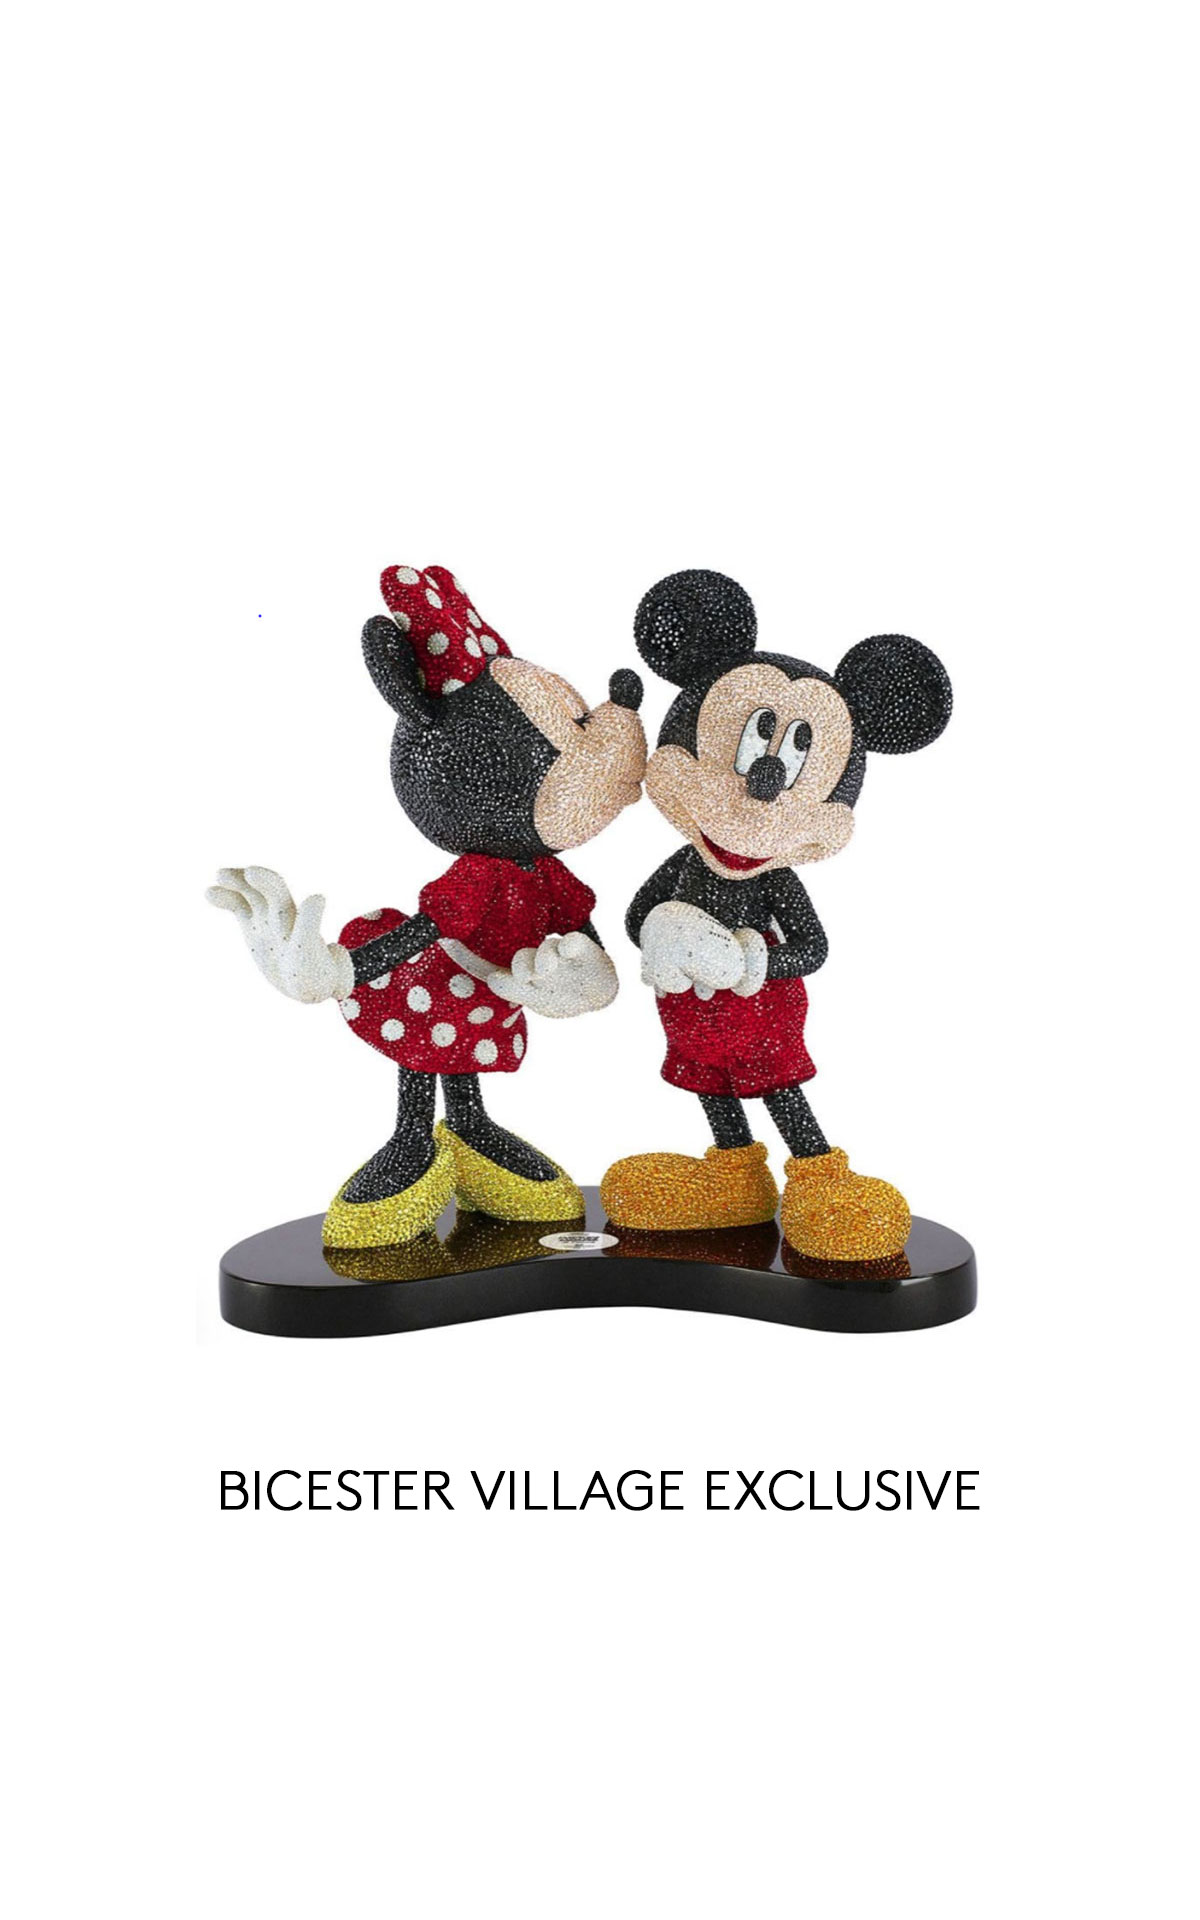 Swarovski Mickey & Minnie figure from Bicester Village